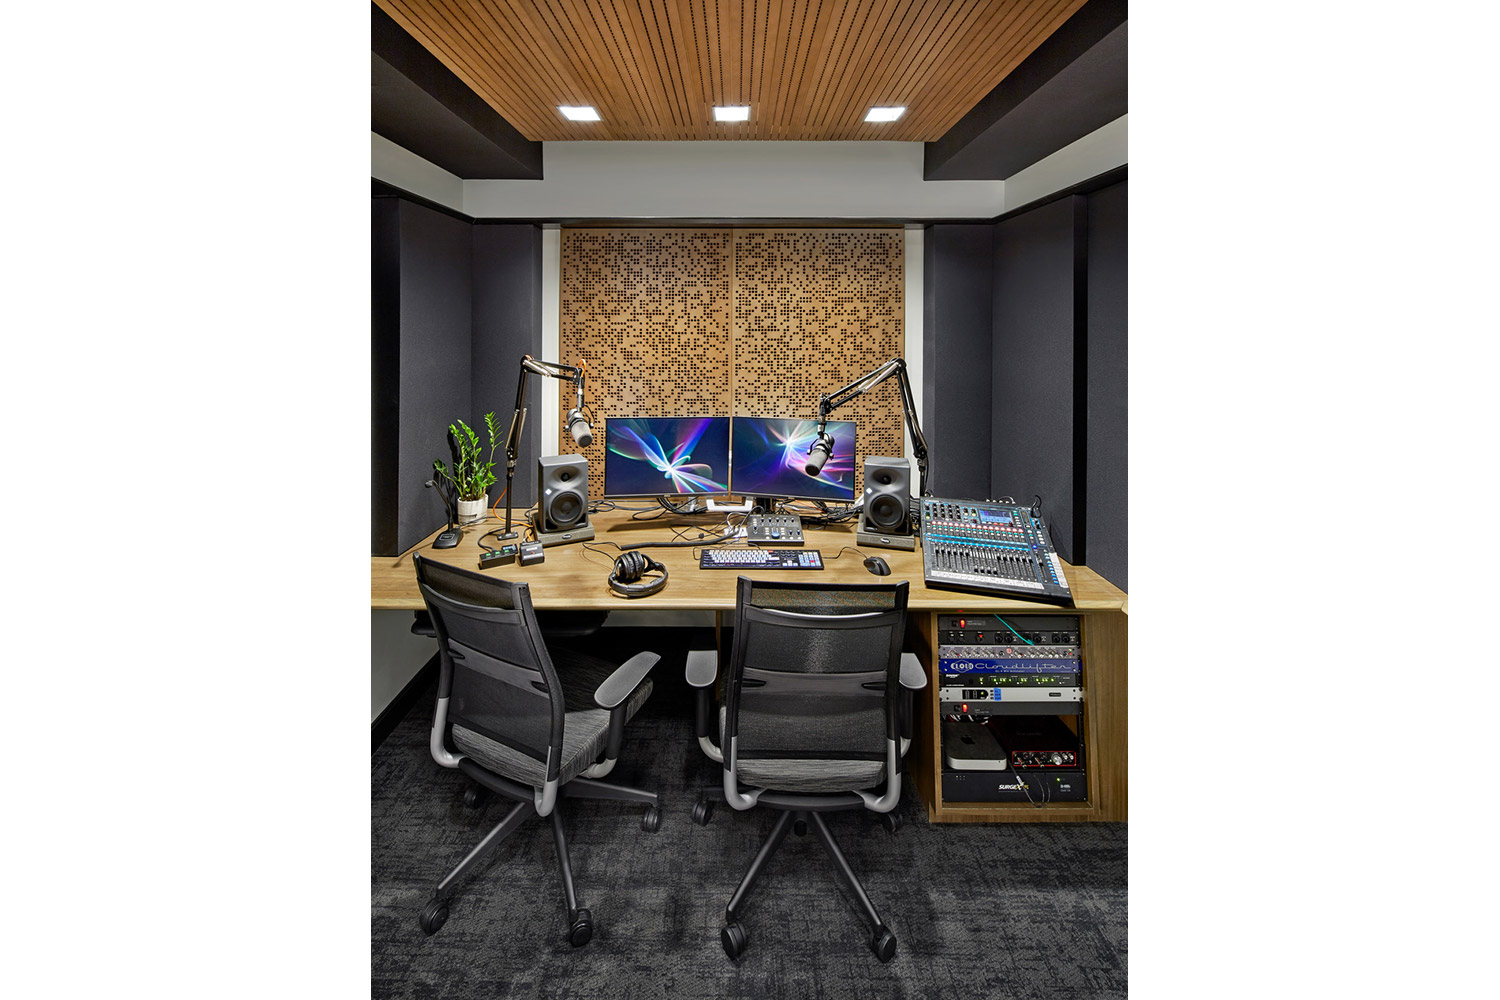 Stitcher is among the earliest, the most creative and most successful podcast creator companies. Their team made a move to build out larger production facilities in both its NY and LA offices and they chose WSDG to design their new podcast studios facilities. Edit B.